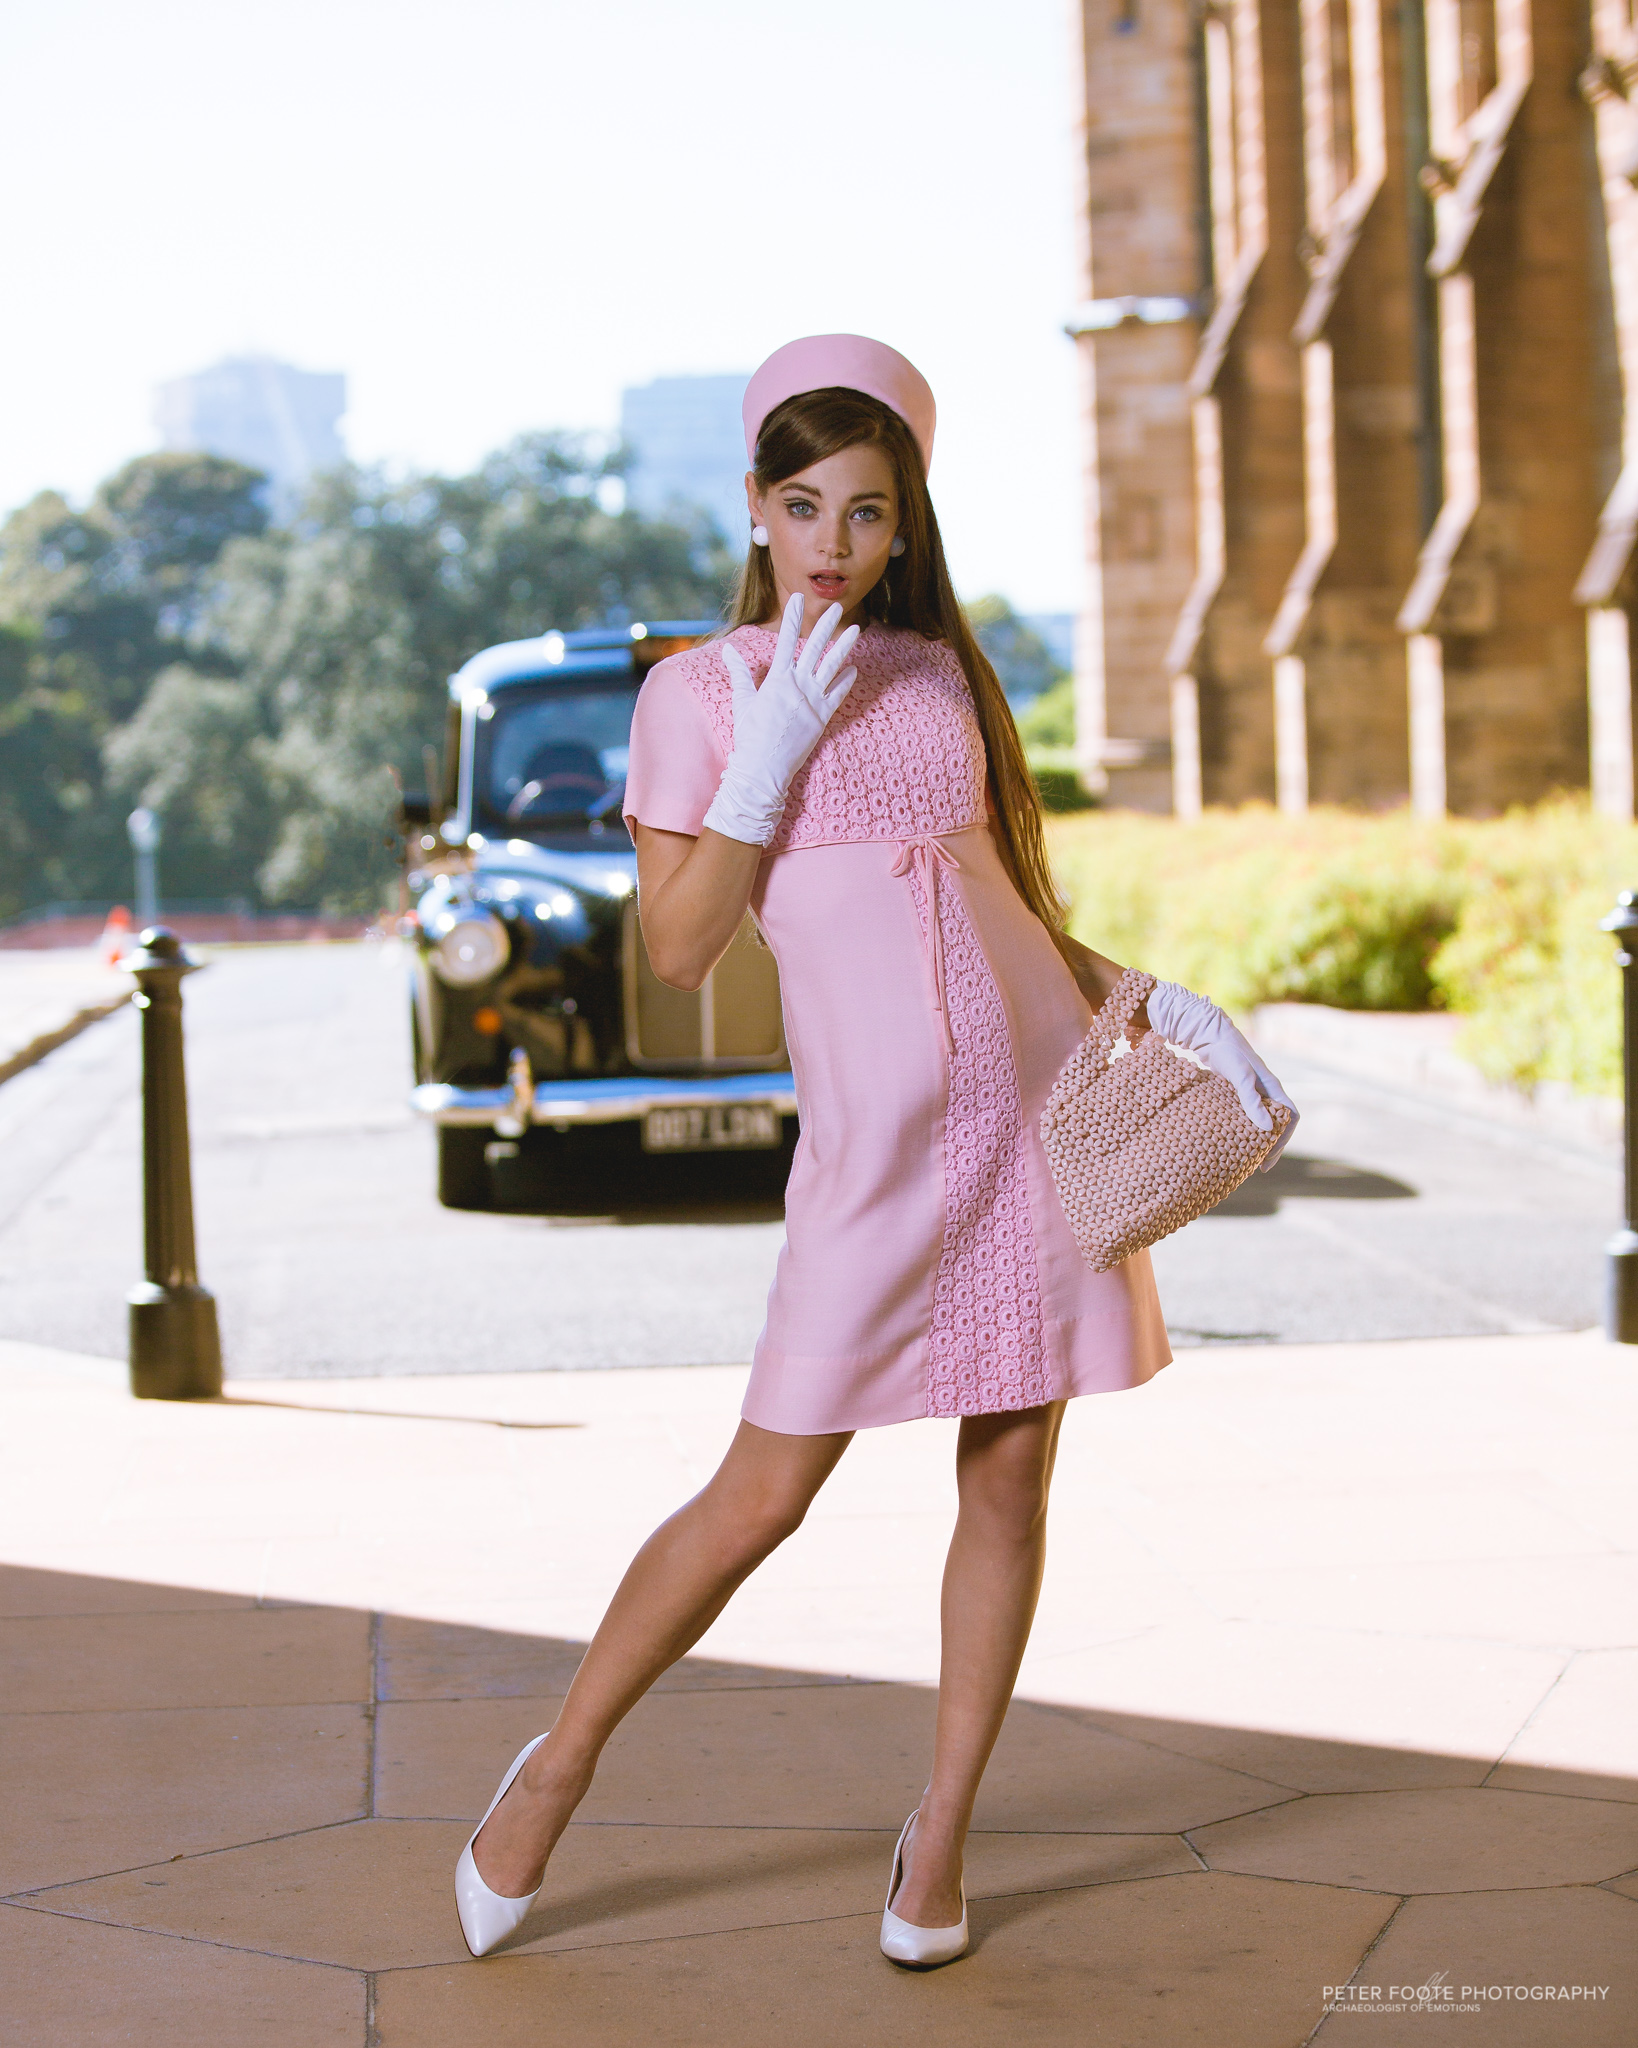 1960s Taxi Editorial